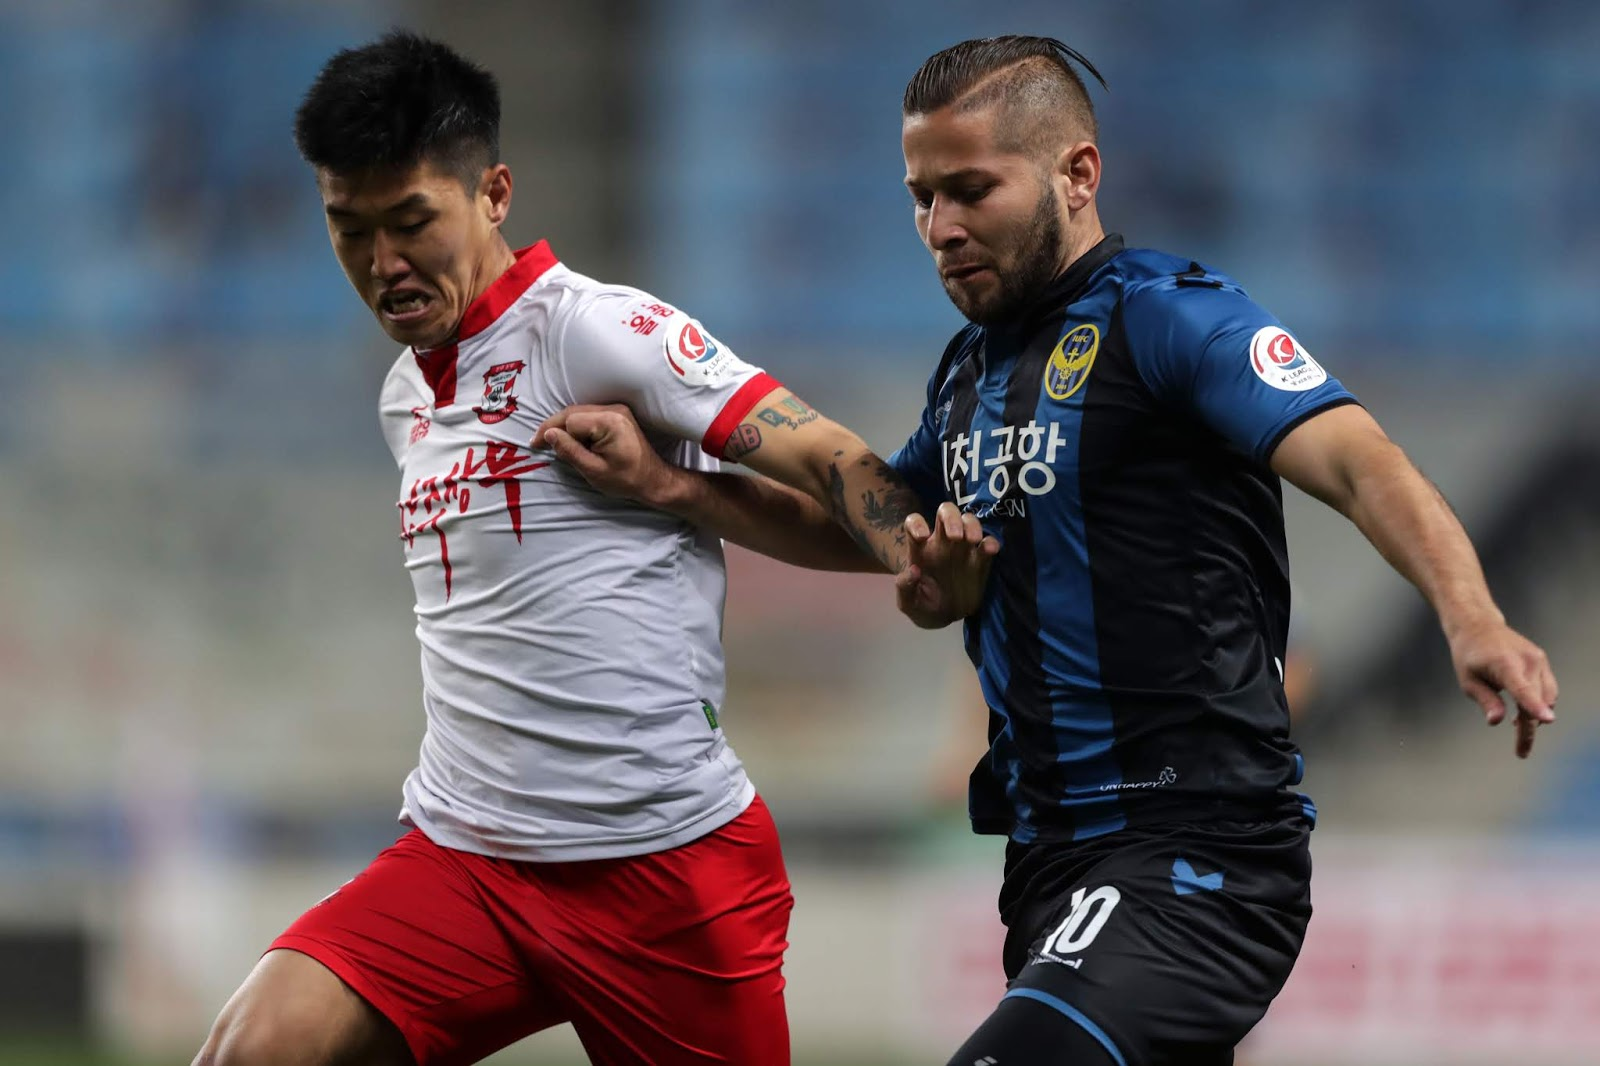 K League 1 Preview: Incheon United vs Sangju Sangmu